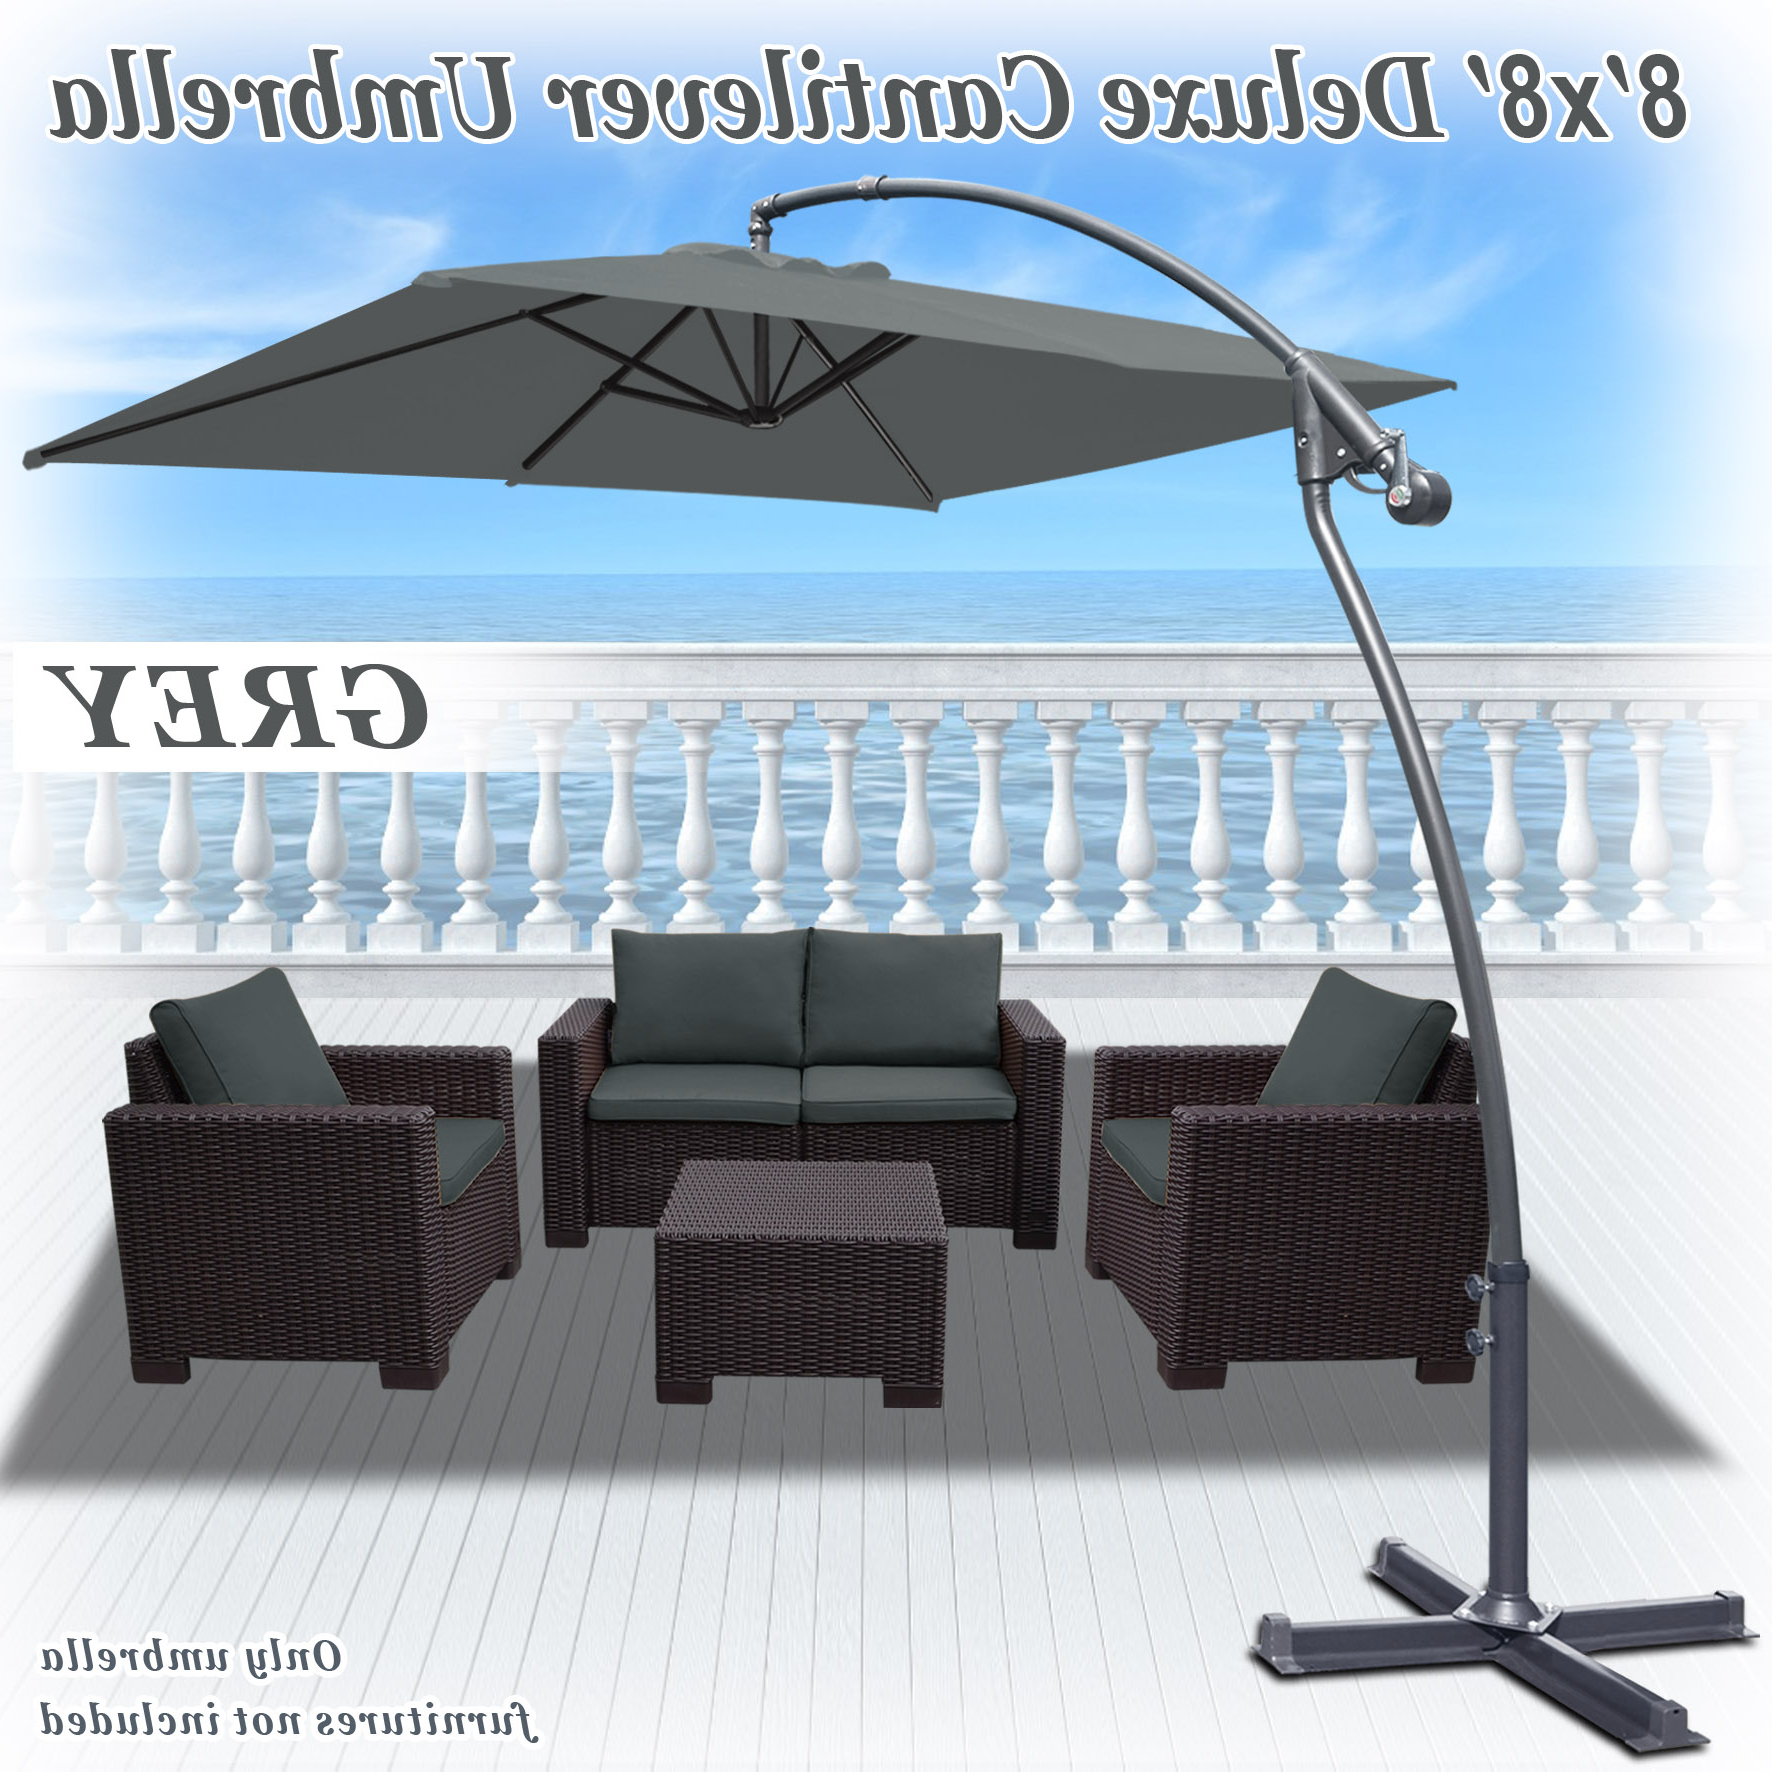 Strong Camel 8' X 8' Cantilever Hanging Umbrella Offset Patio Umbrella Garden Outdoor Sunshade Market 360 Degree Rotational Function In Grey Color With Regard To Latest Justis Cantilever Umbrellas (View 8 of 20)